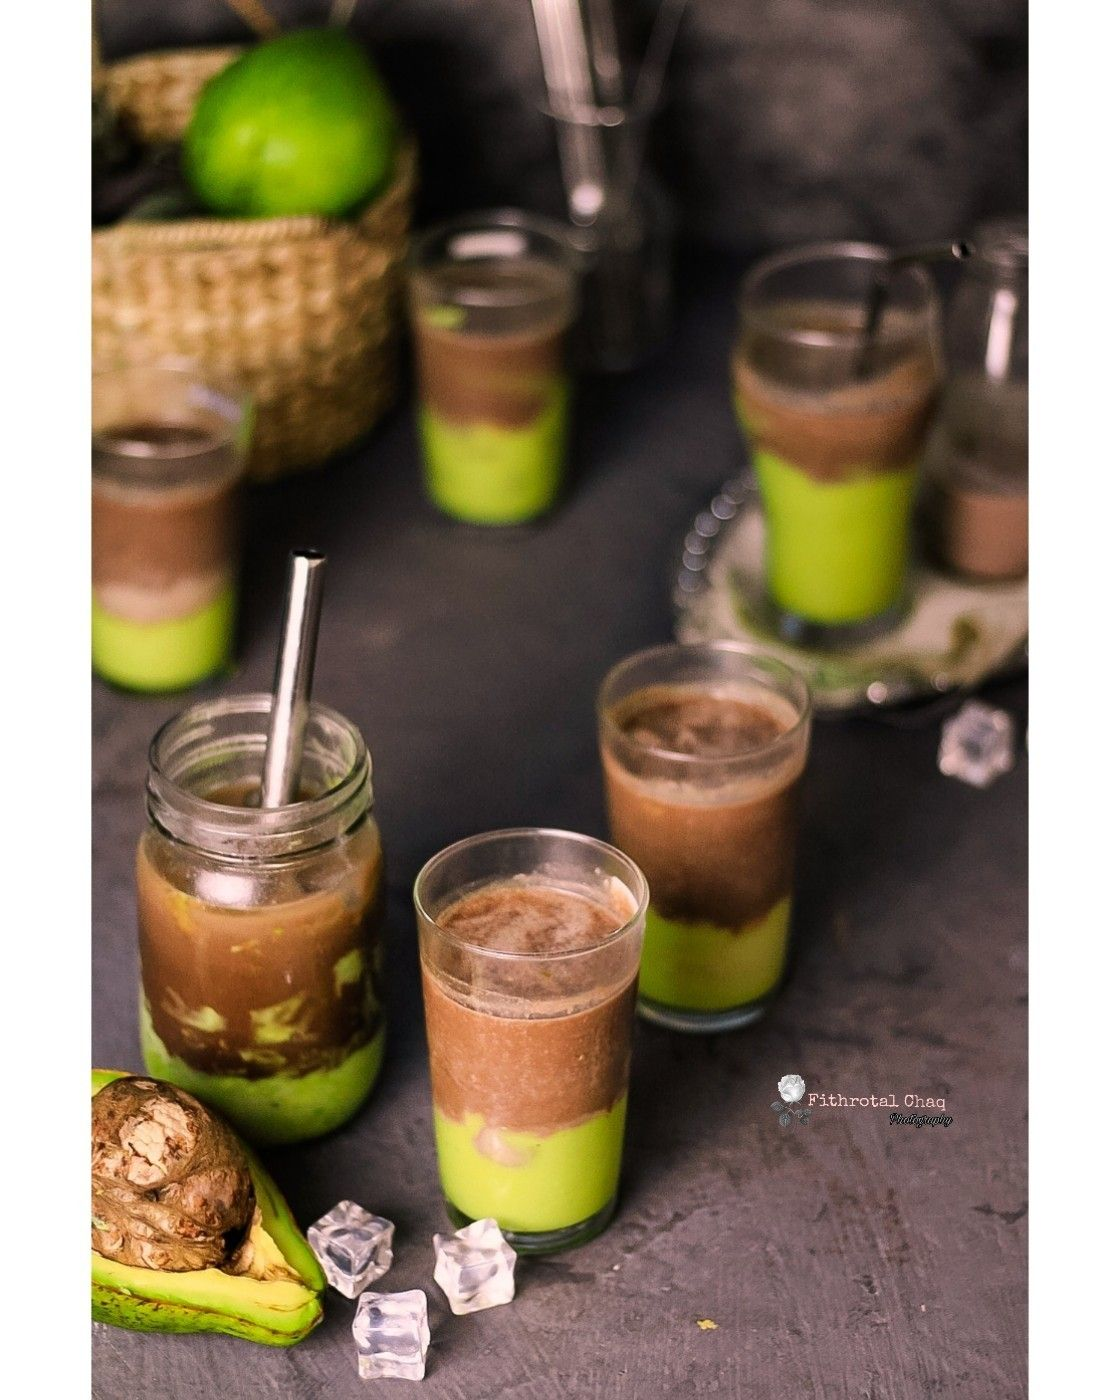 Avocado Milo Ice Foodphotography Ice Alpukat Kopi Instan Kopi